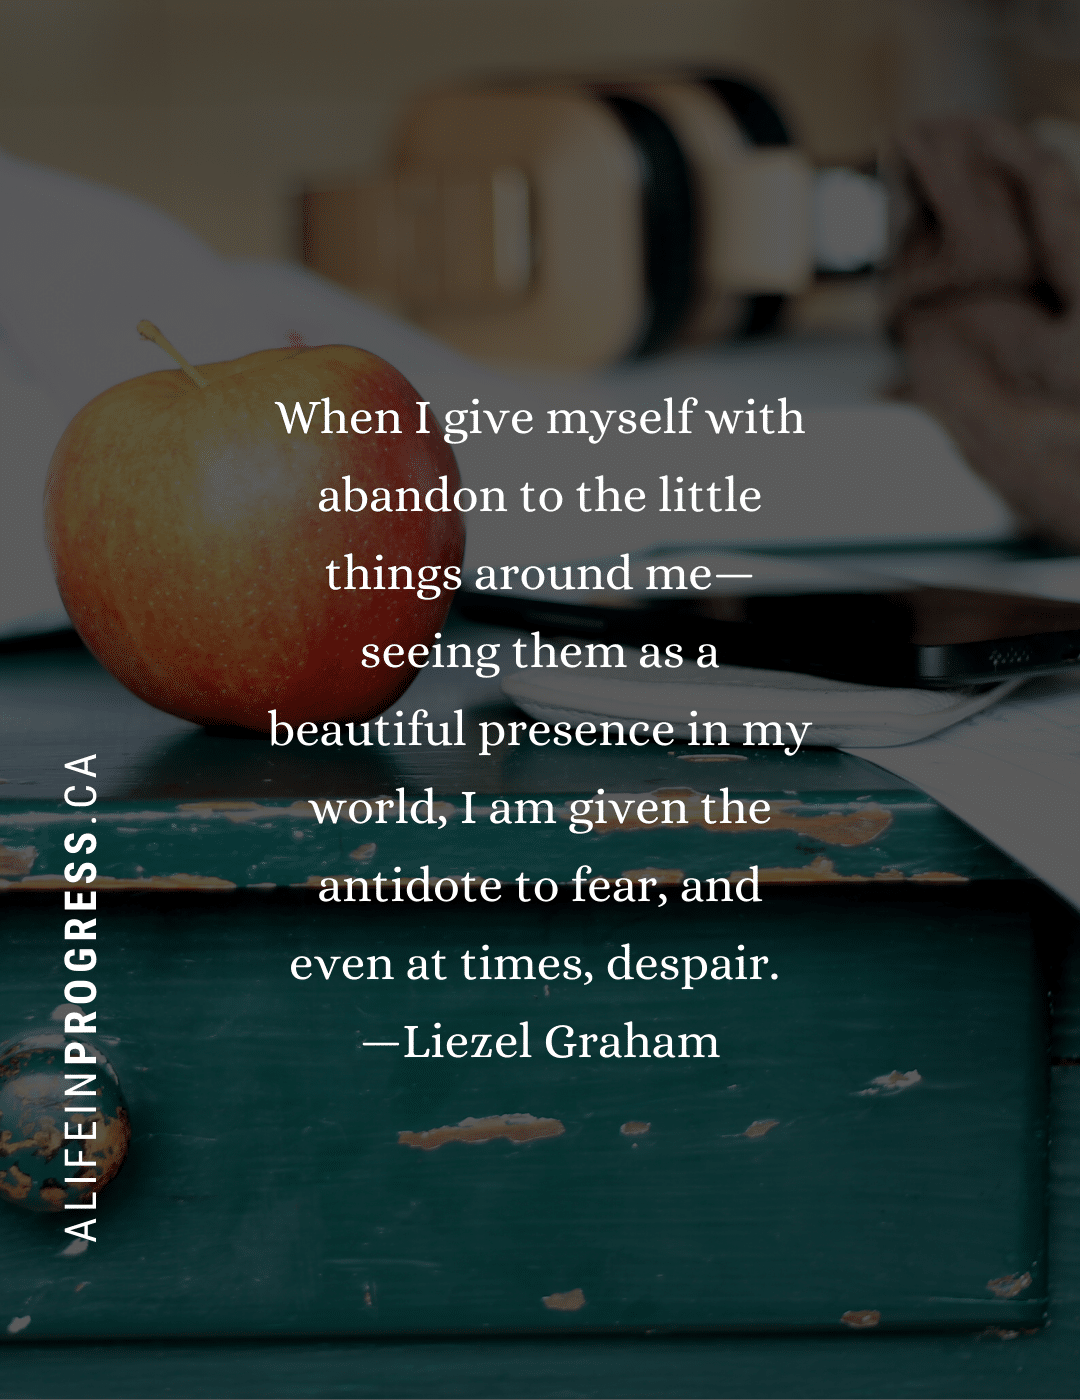 """An apple sitting on a worn teal table with the quote, """"When I give myself with abandon to the little things around me—seeing them as a beautiful presence in my world, I am given the antidote to fear, and even at times, despair.  —Liezel Graham"""""""